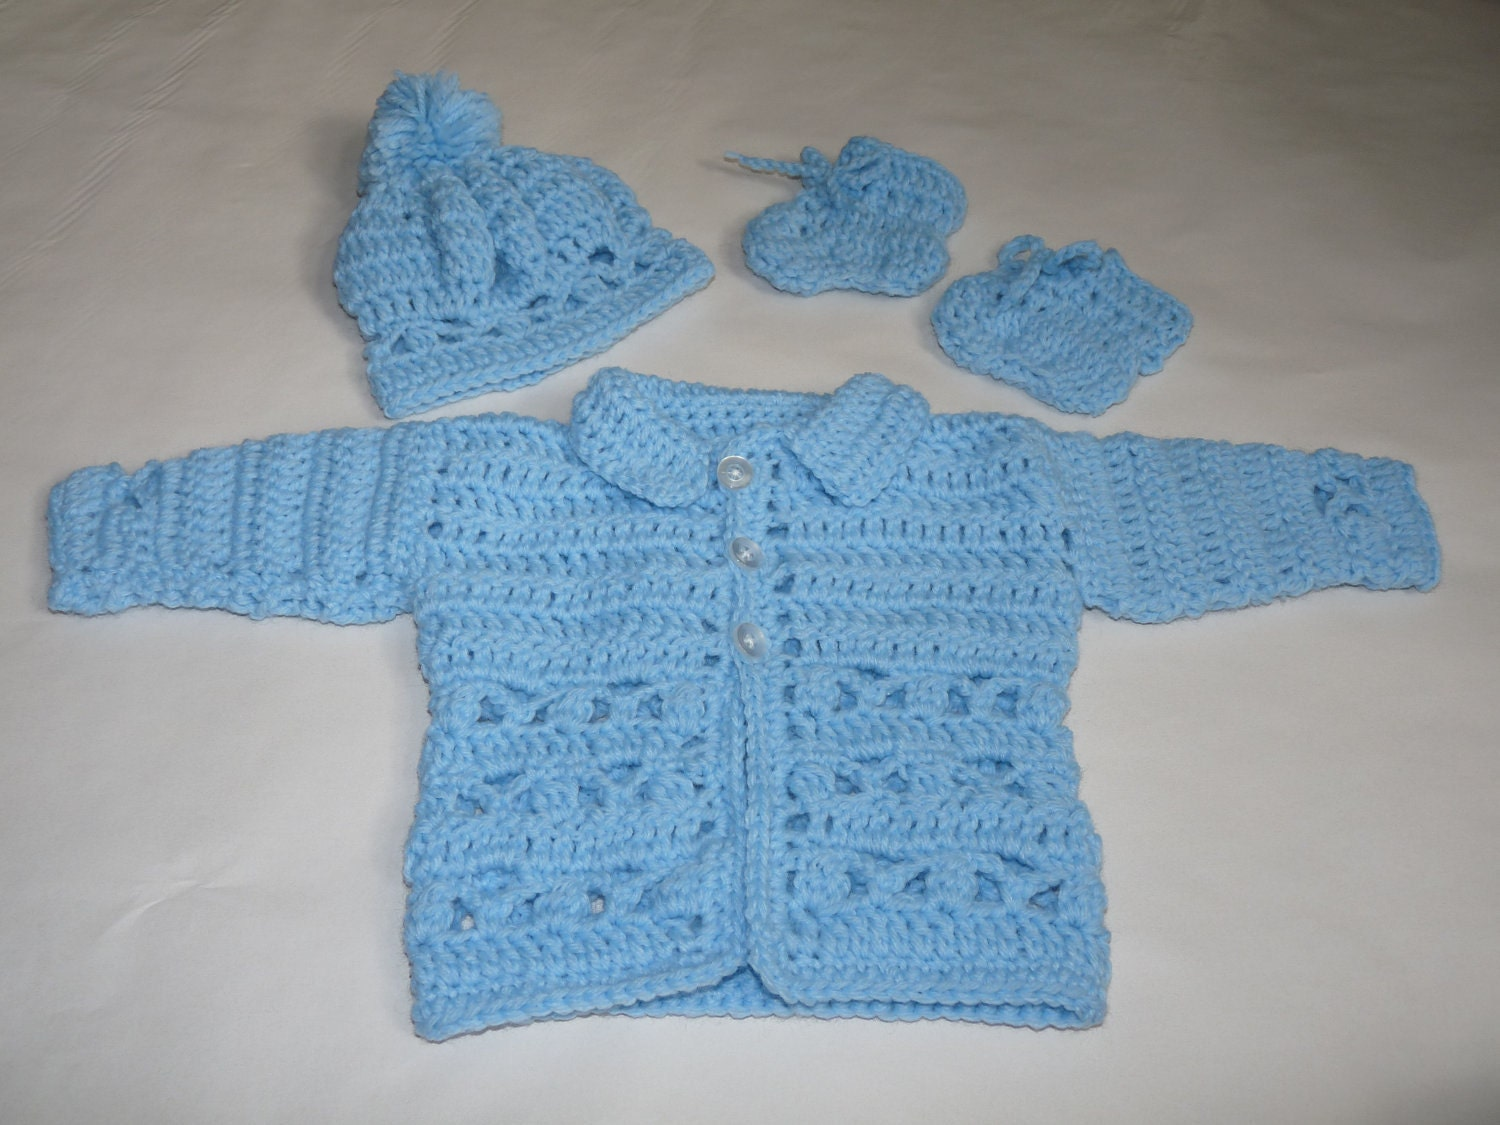 Baby boy crochet blue layette outfit sweater jacket hat and